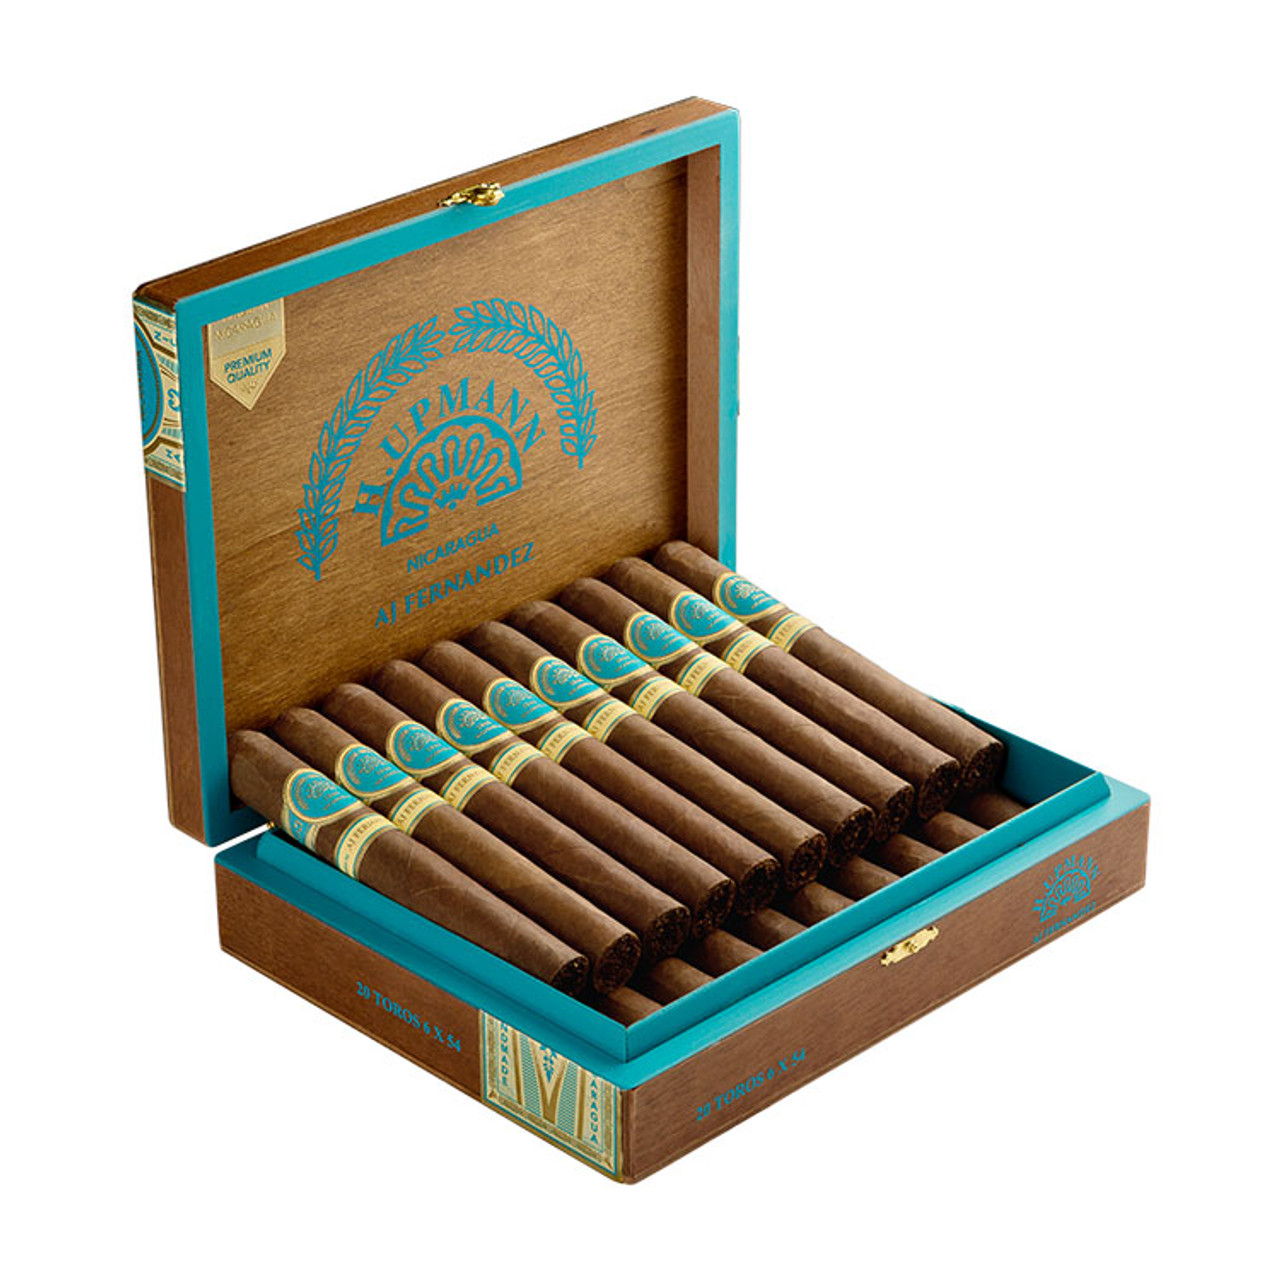 H. Upmann by AJ Fernandez Robusto Cigars - 5 x 52 (Box of 20)